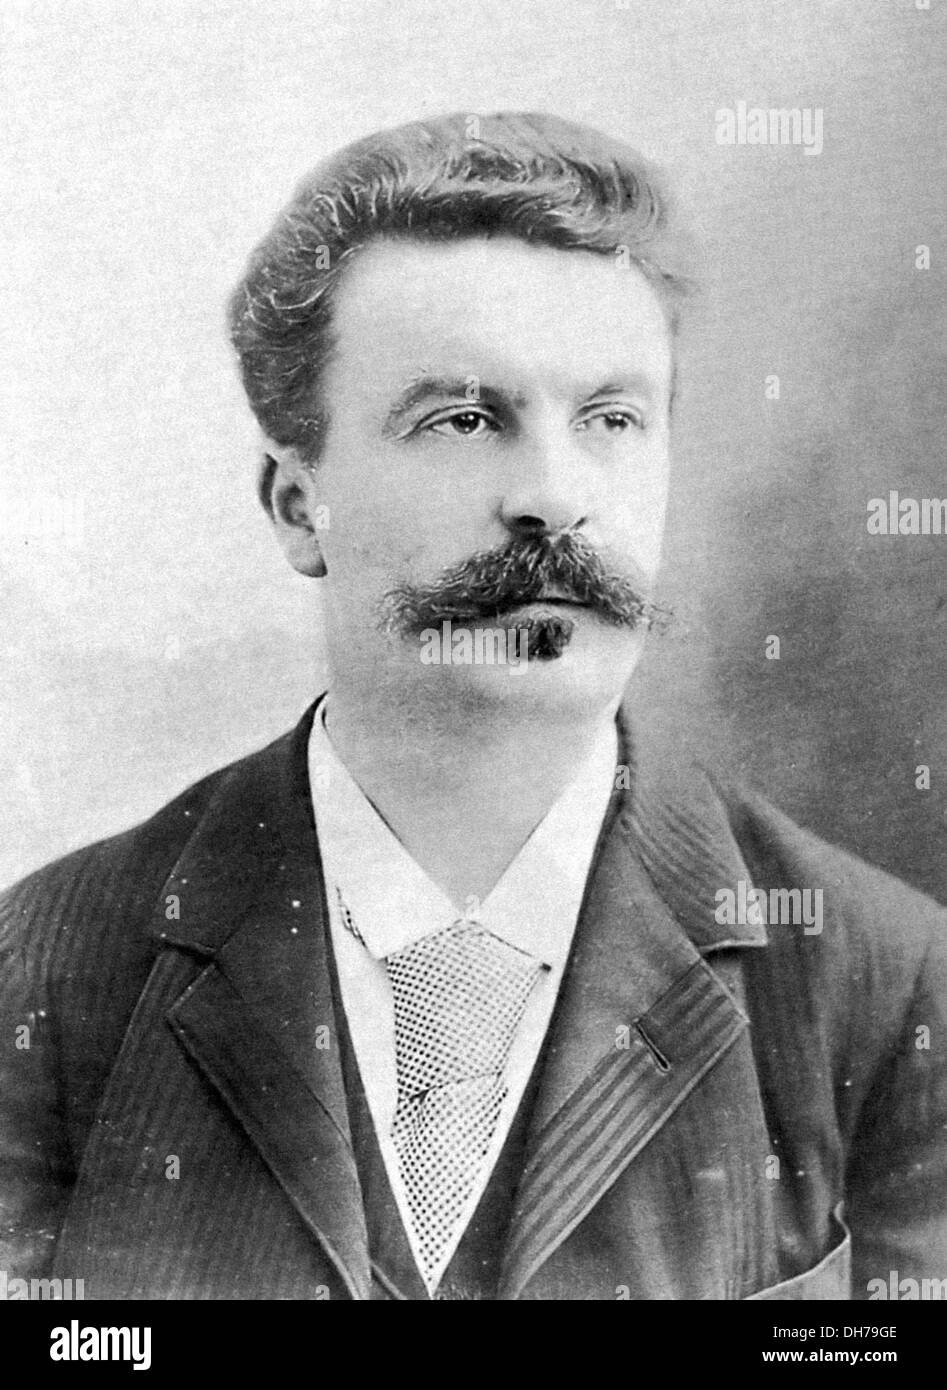 Guy de Maupasssant - 5 August 1850 – 6 July 1893 - French writer - Stock Image